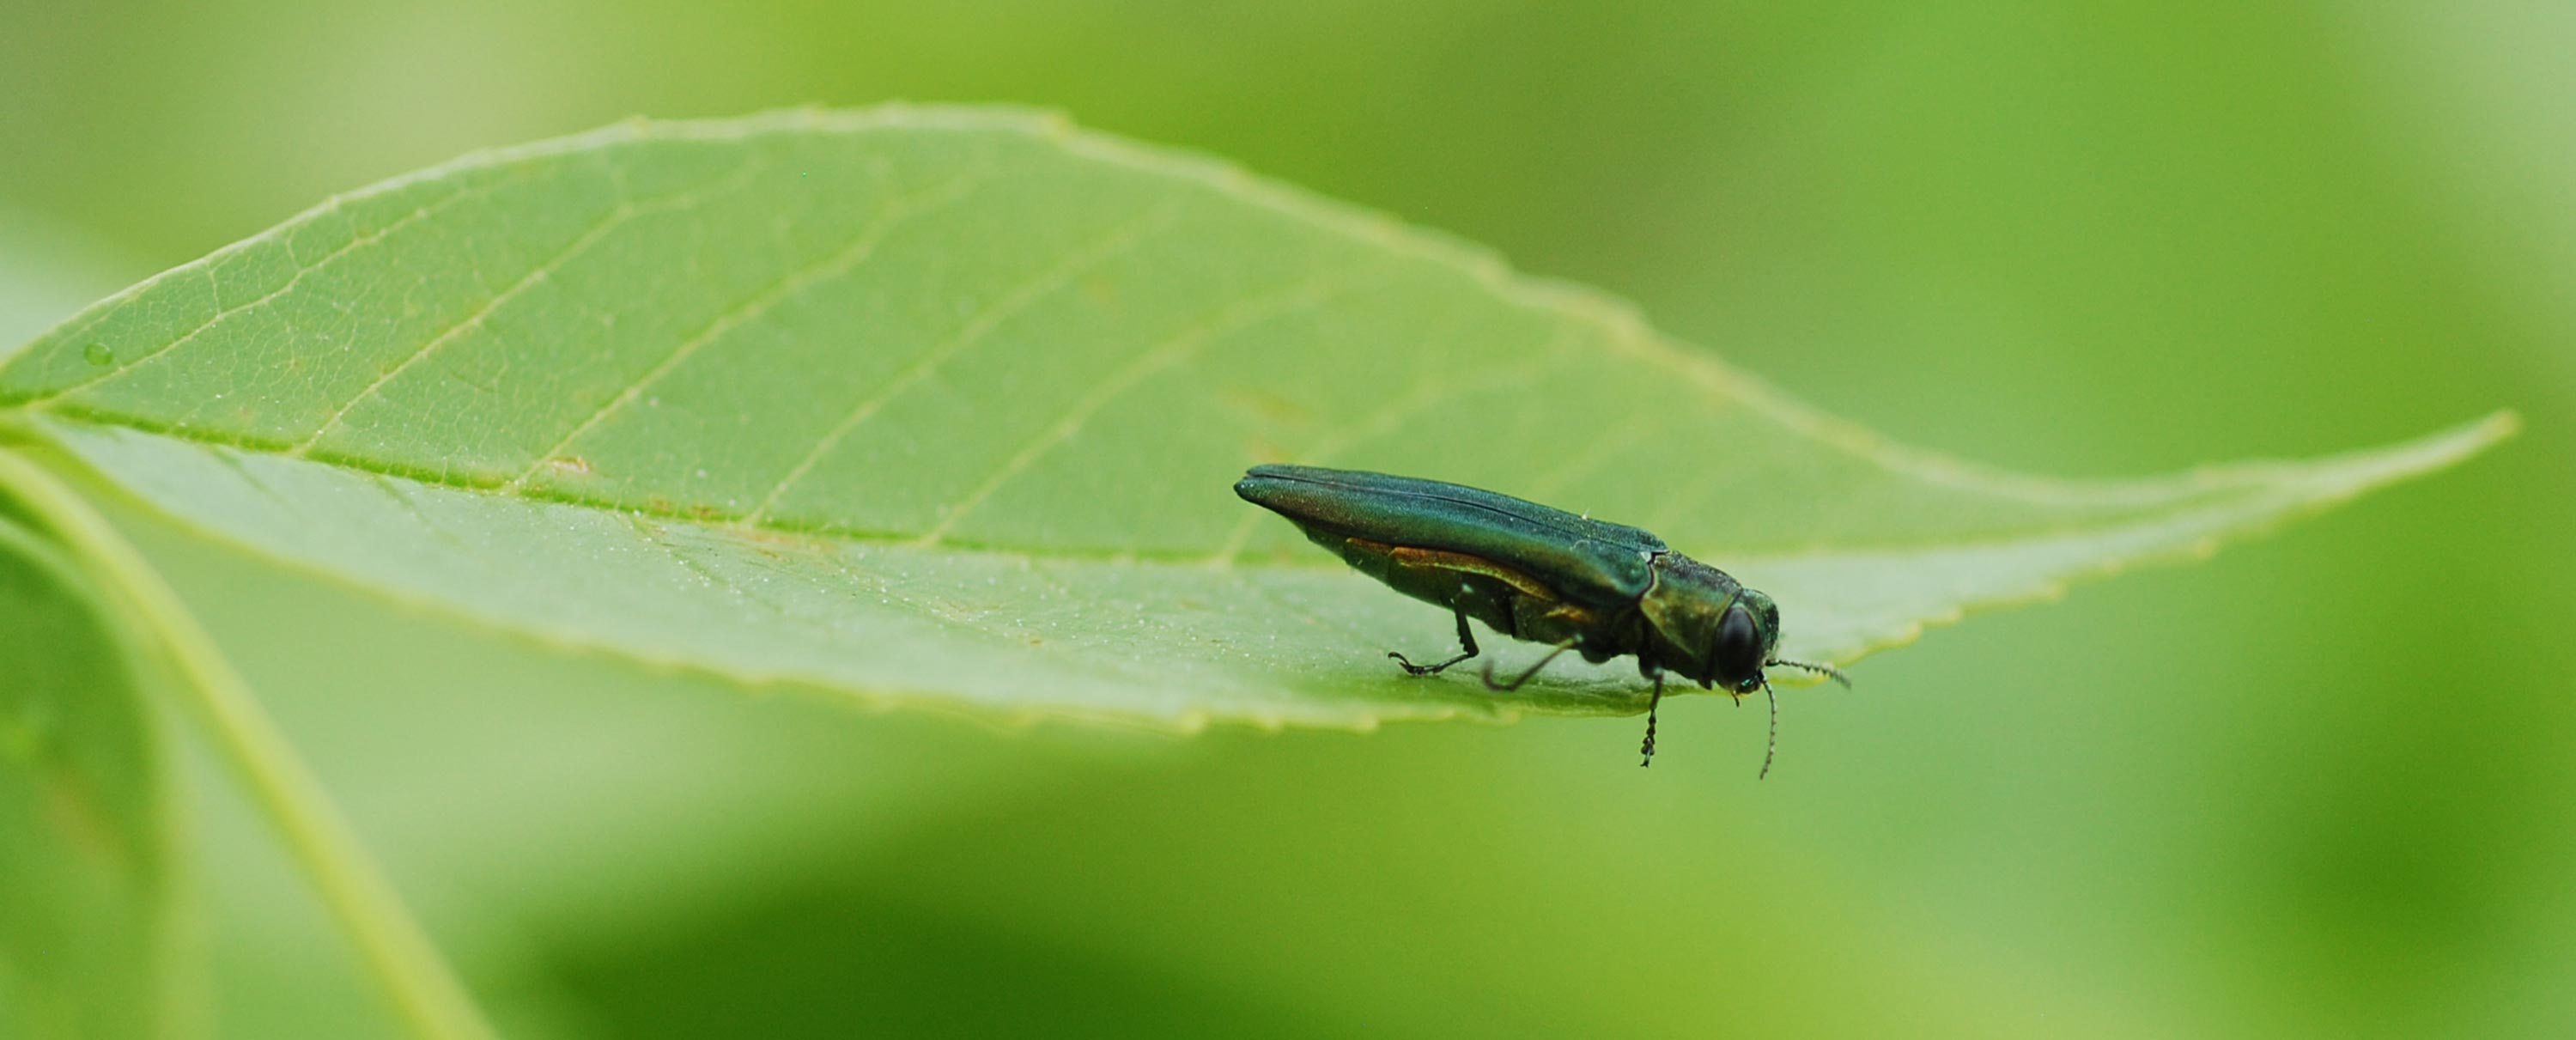 Emerald Ash Borer Discovered In Lyons, Colorado